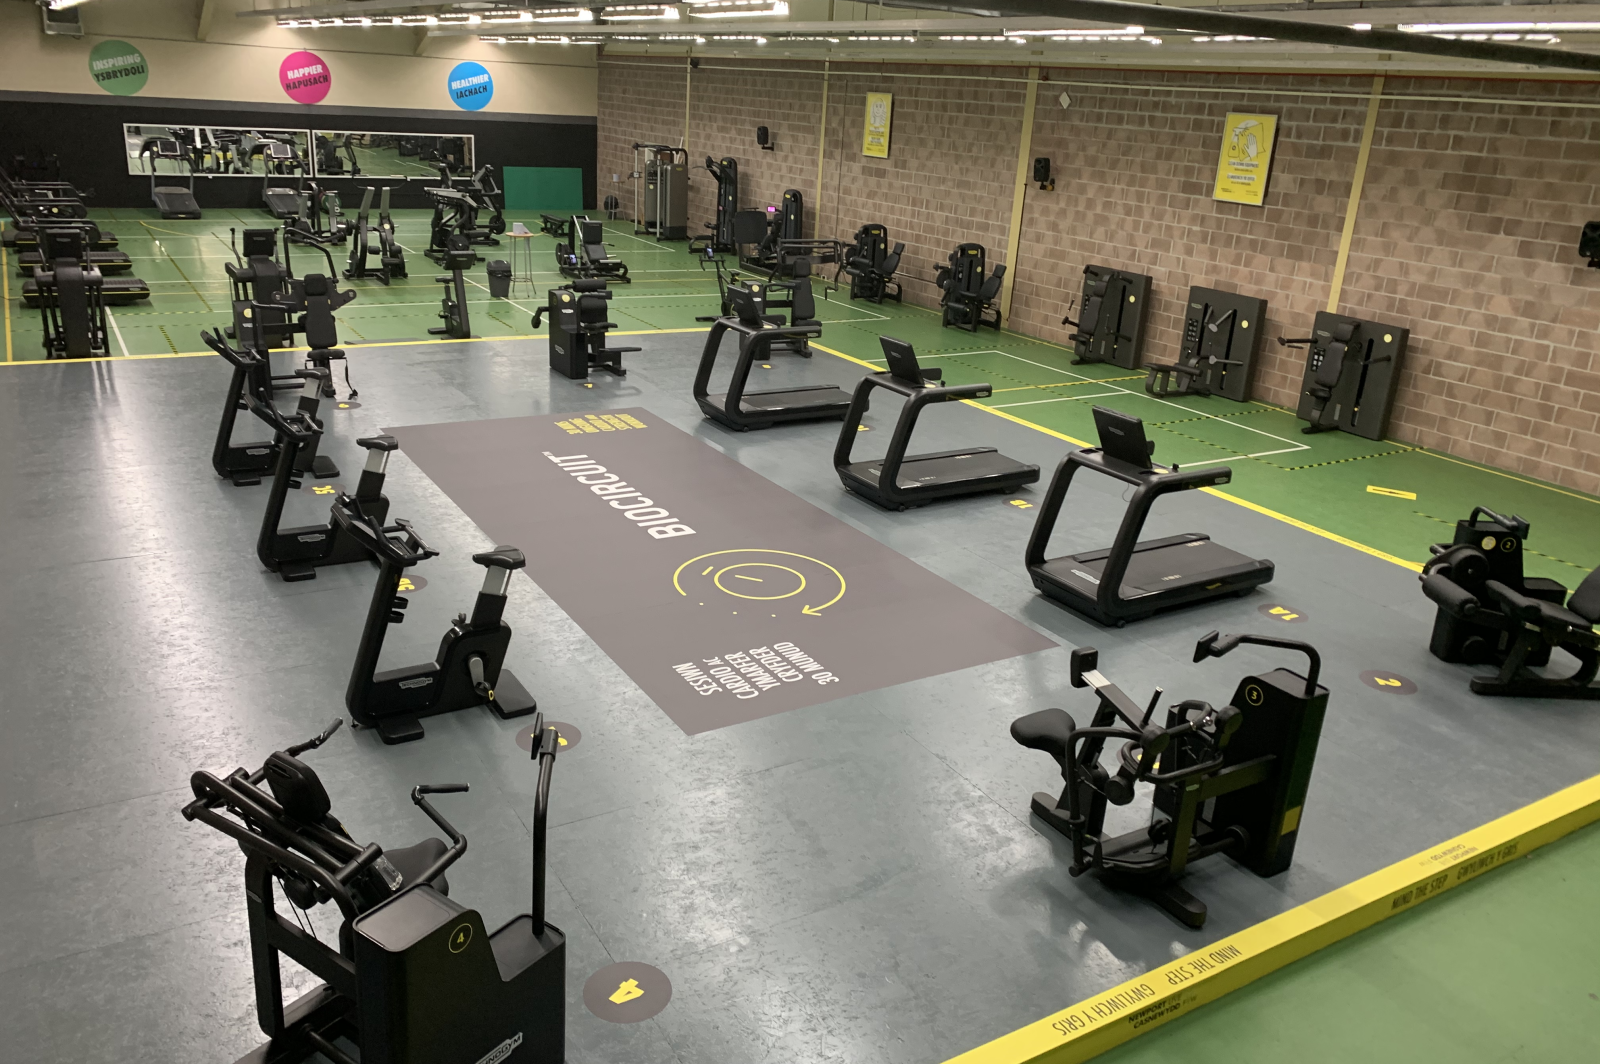 Gym at Regional Pool and Tennis Centre